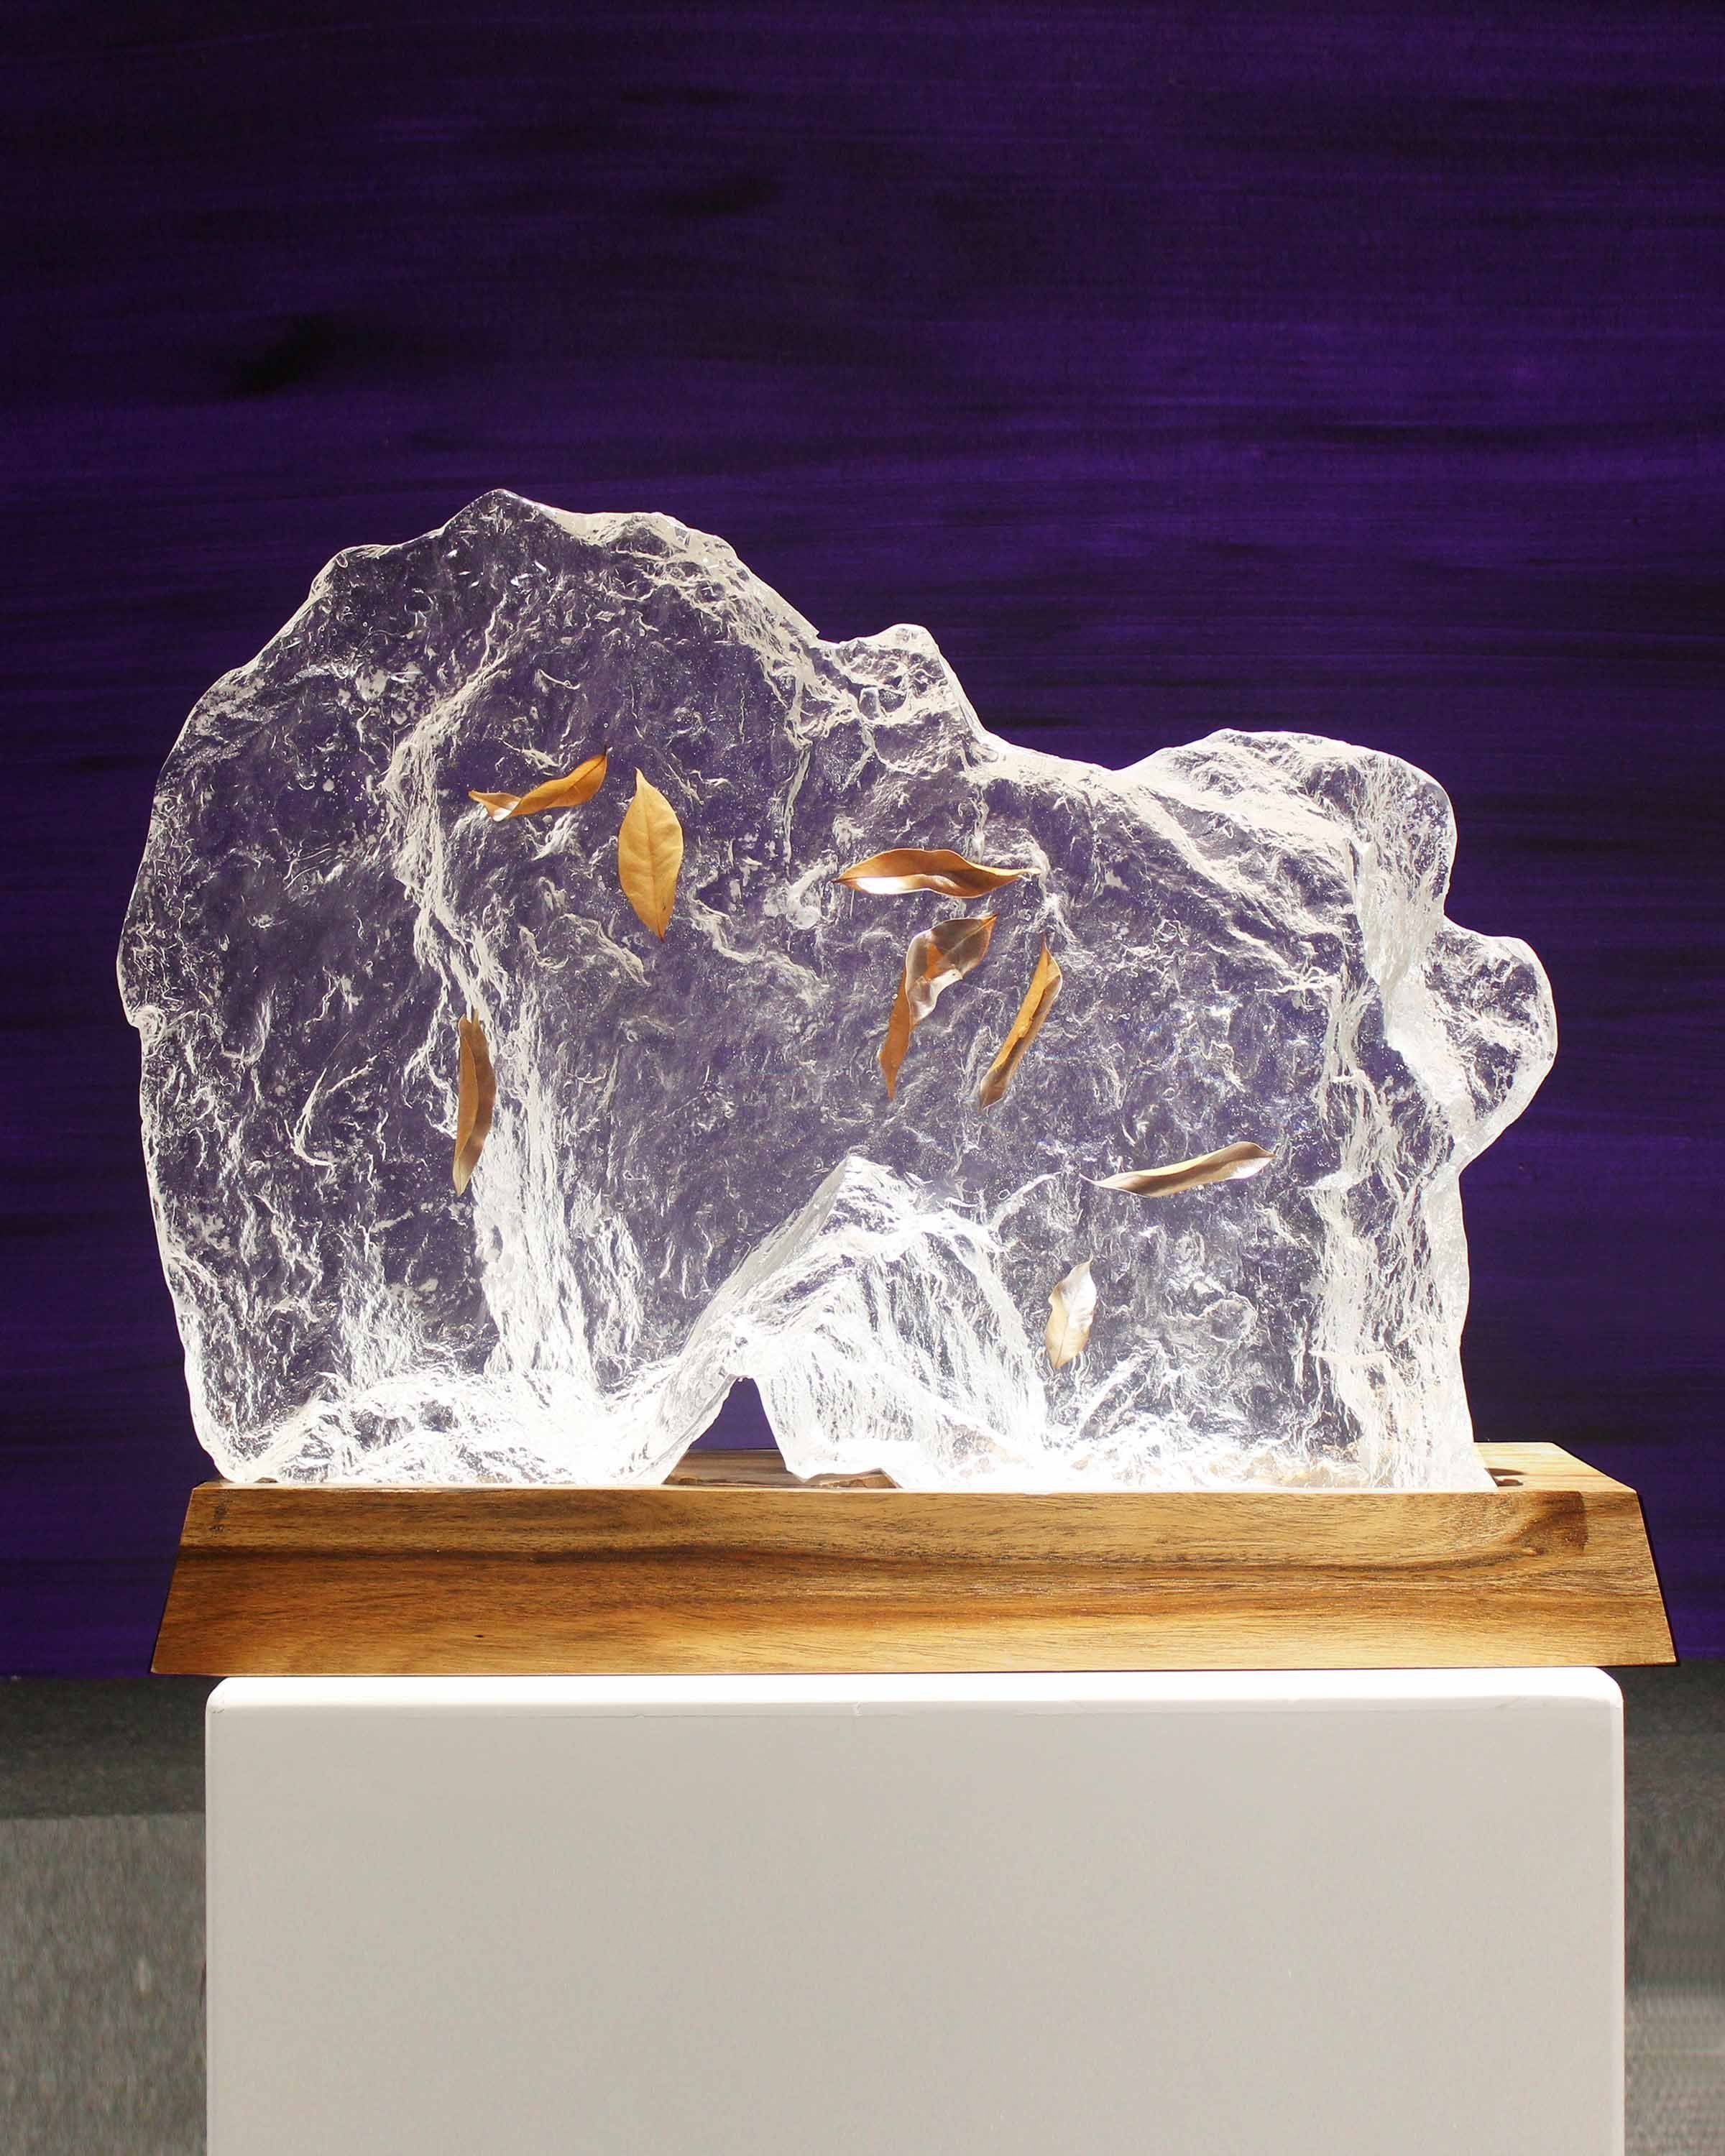 Luxury Transparent acrylic Sculpture | Angie Homes